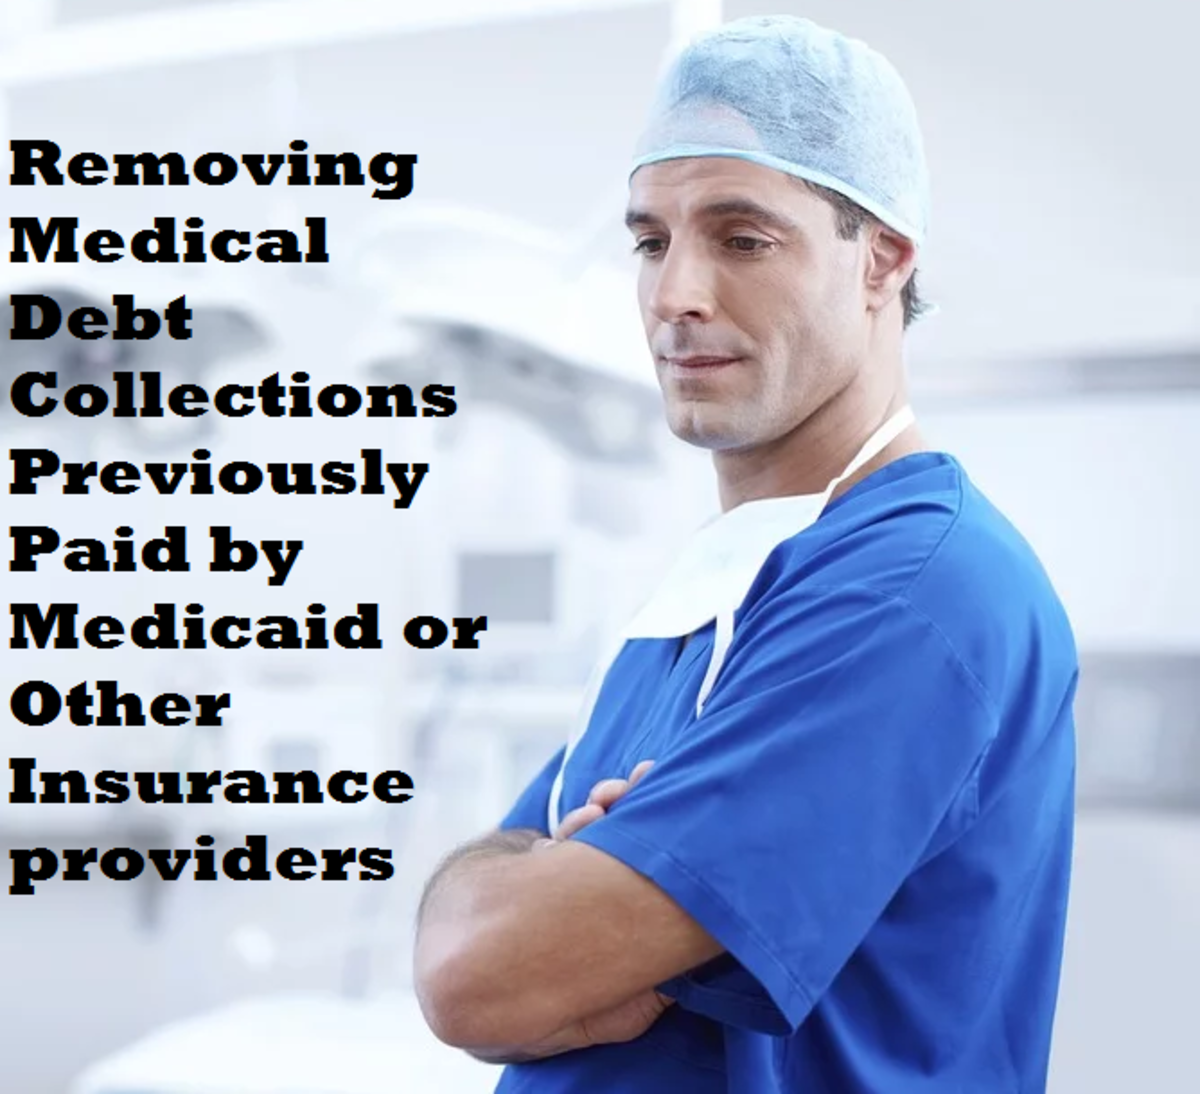 Removing Medical Debt Collections Previously Paid by Medicaid or Other Insurance Providers